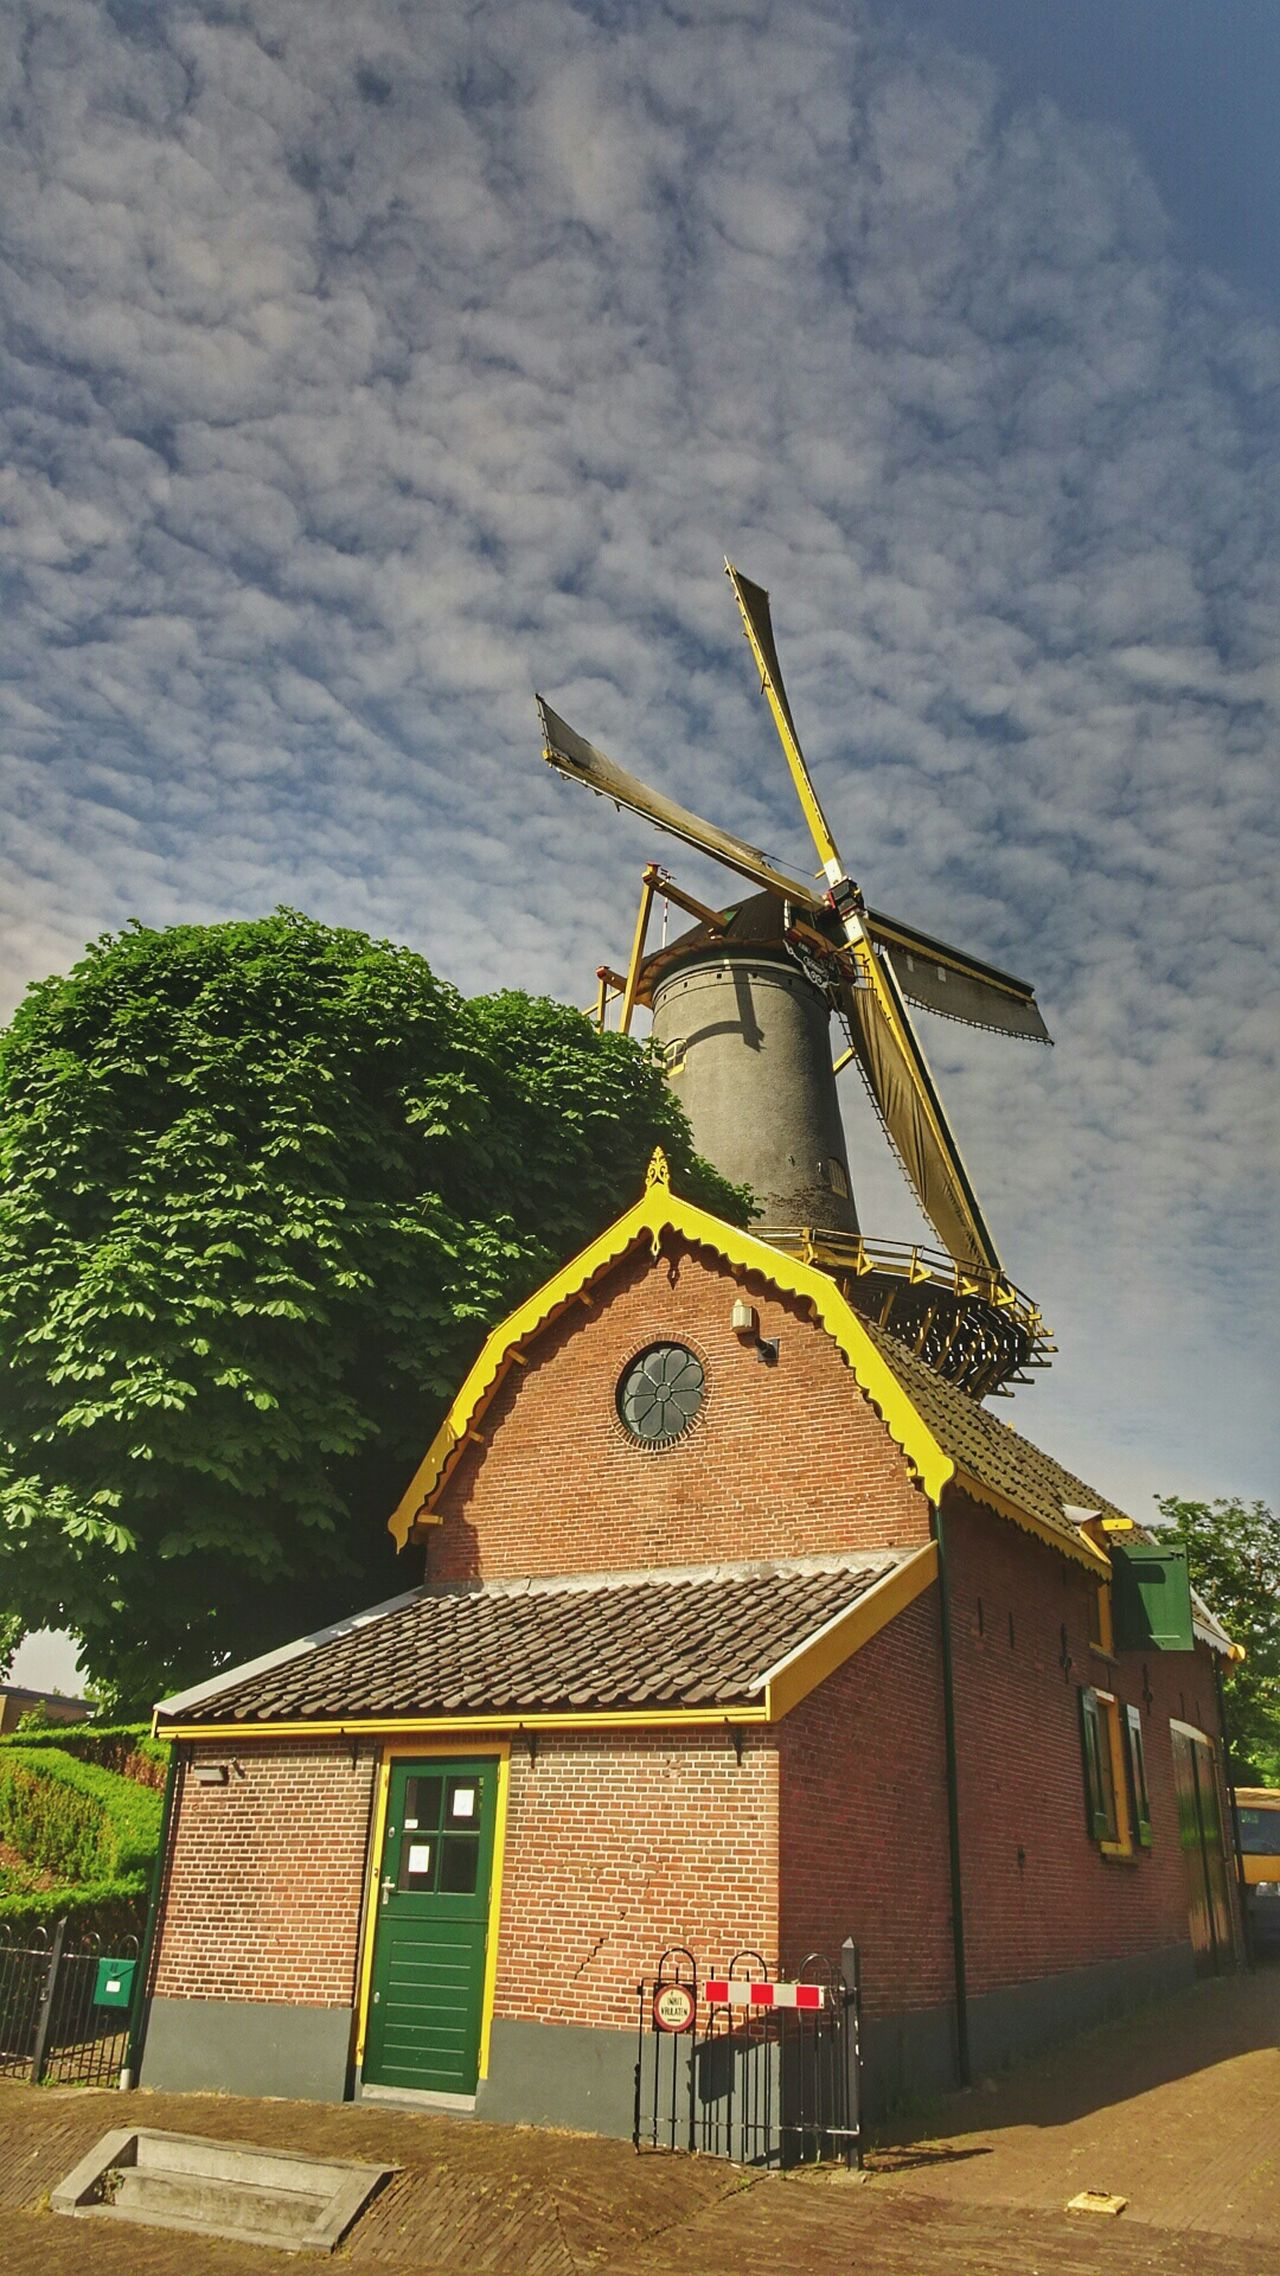 Beautiful Windmill Check This Out Hanging Out Taking Photos Enjoying Life Historical Buildings